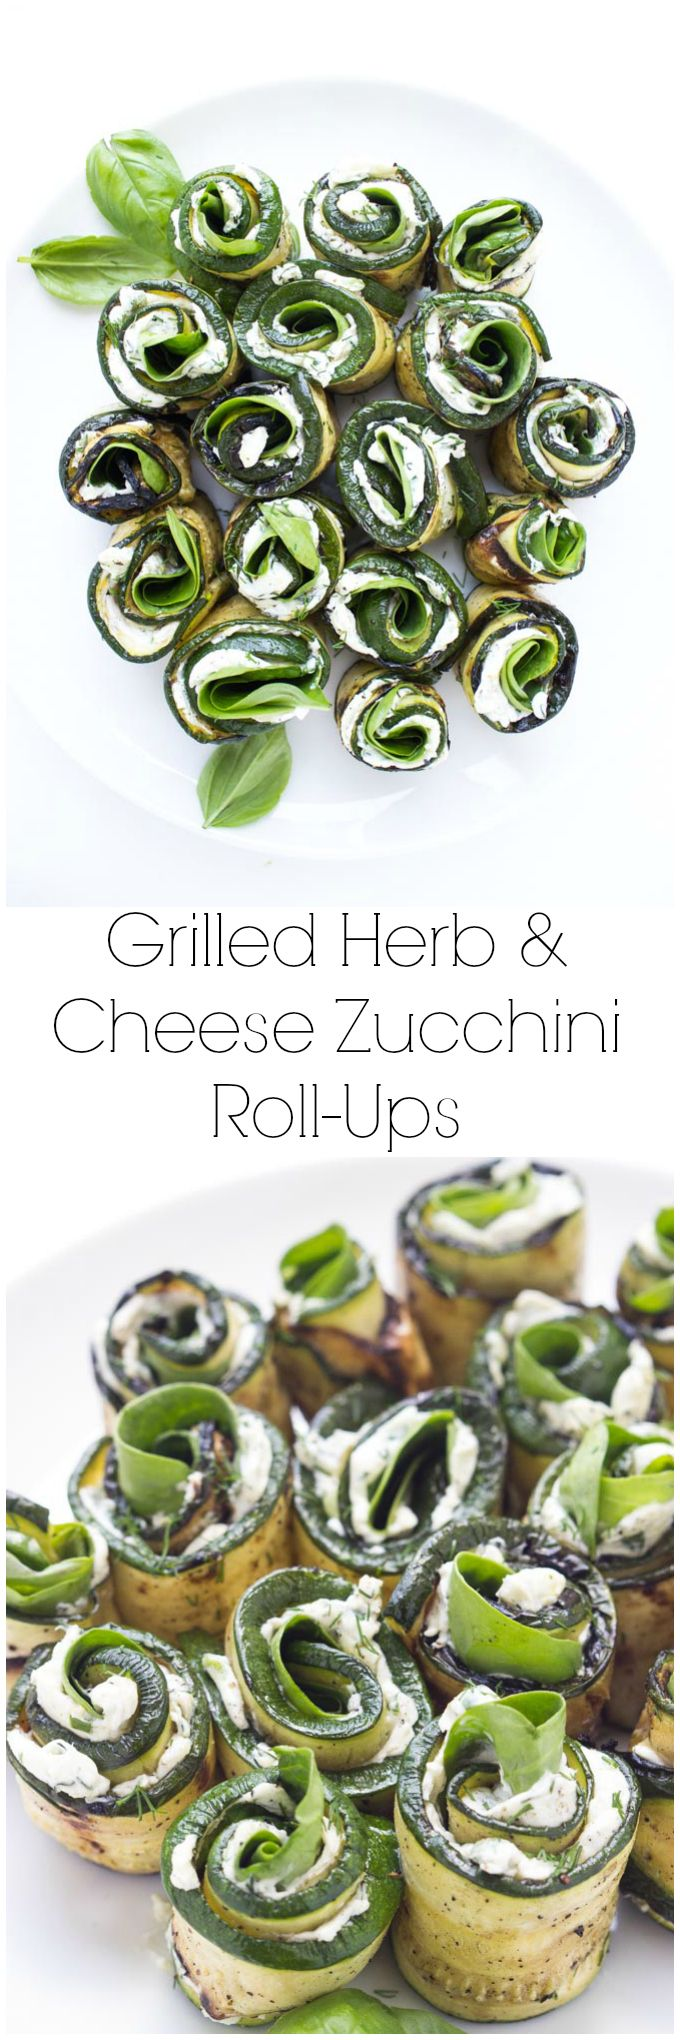 Grilled zucchini filled with herby cream cheese, baby spinach, and aromatic basil. Easy yet elegant side dish or appetizer | littlebroken.com @littlebroken